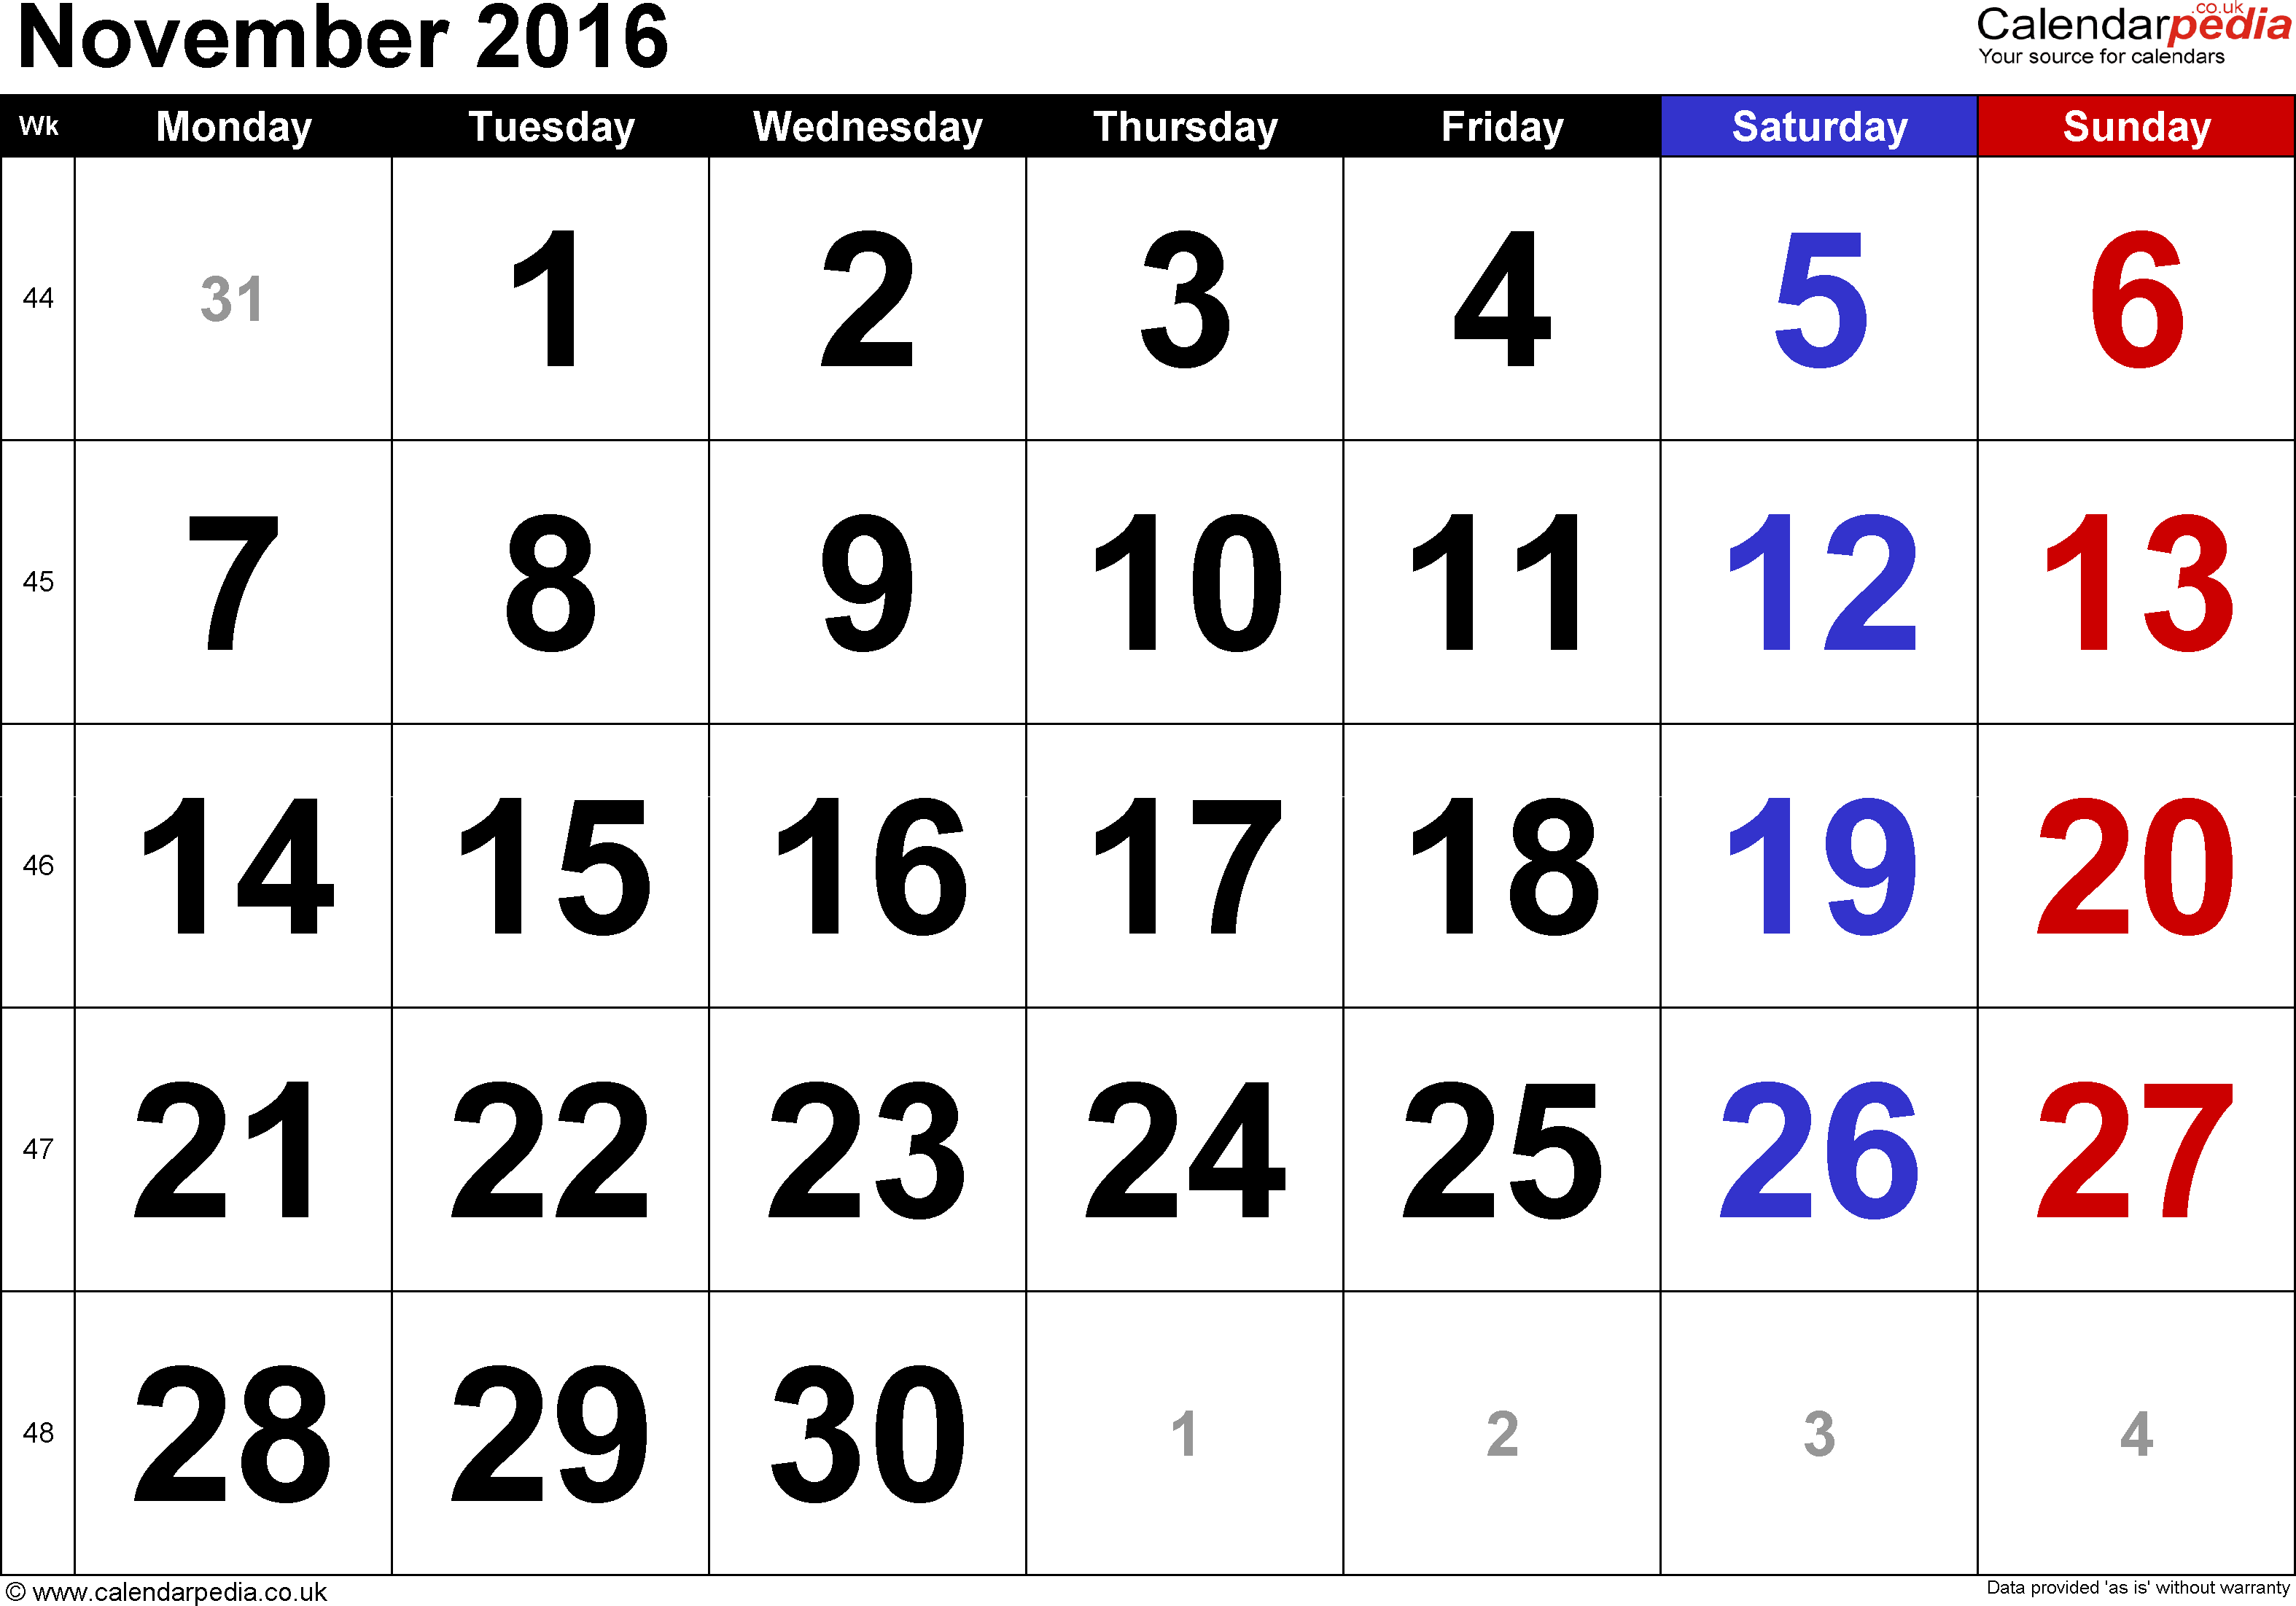 Calendar November 2016, landscape orientation, large numerals, 1 page, with UK bank holidays and week numbers